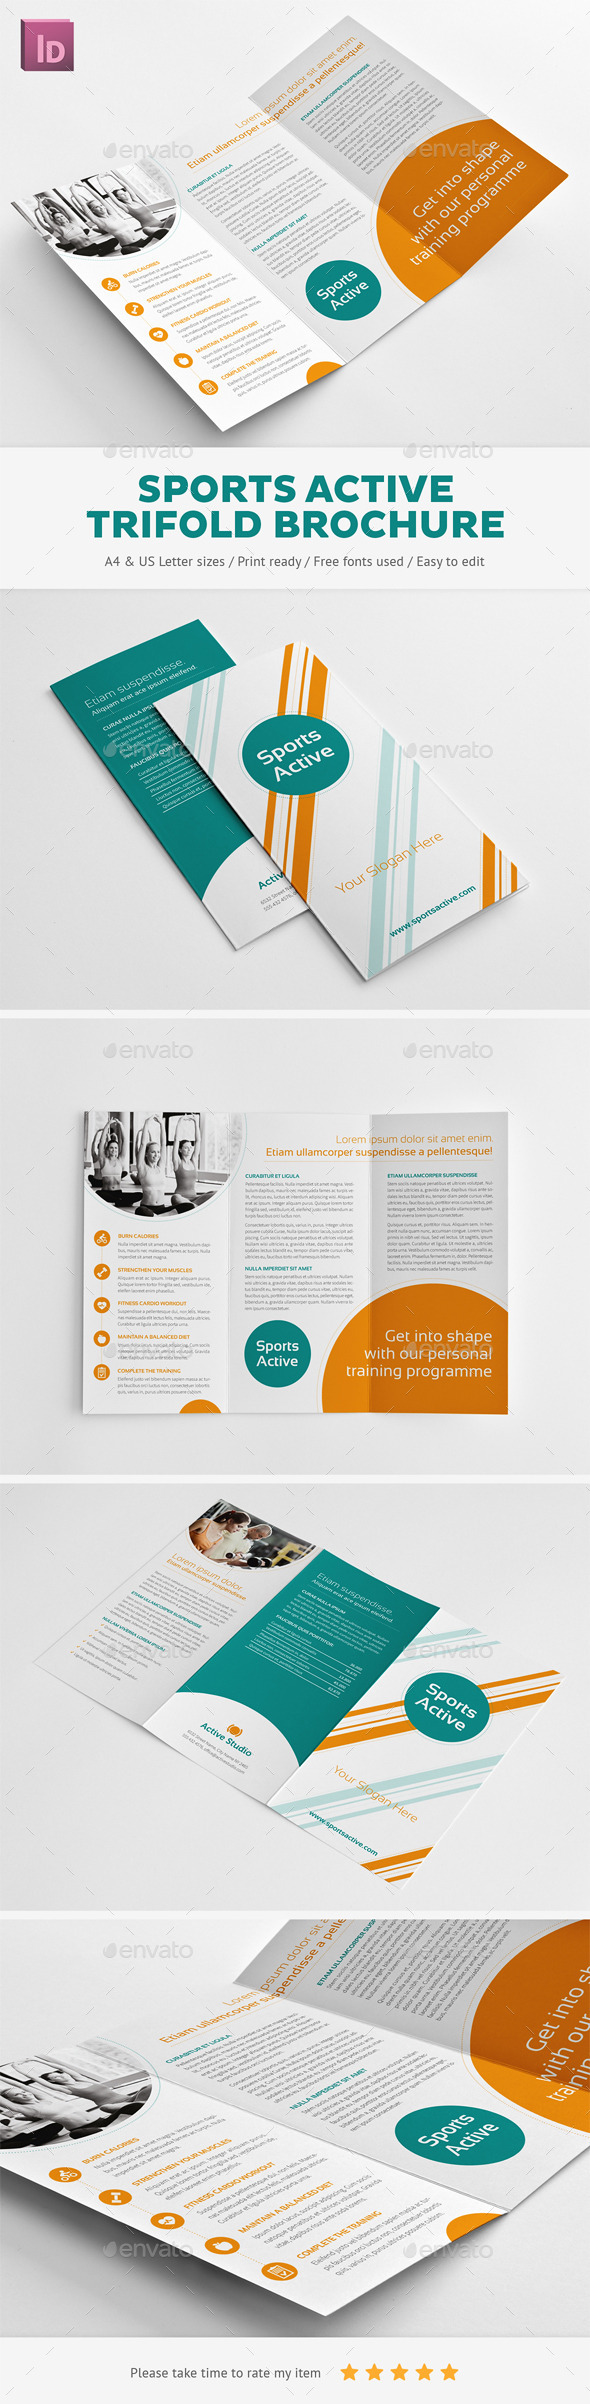 GraphicRiver Sports Active Trifold Brochure 9944636